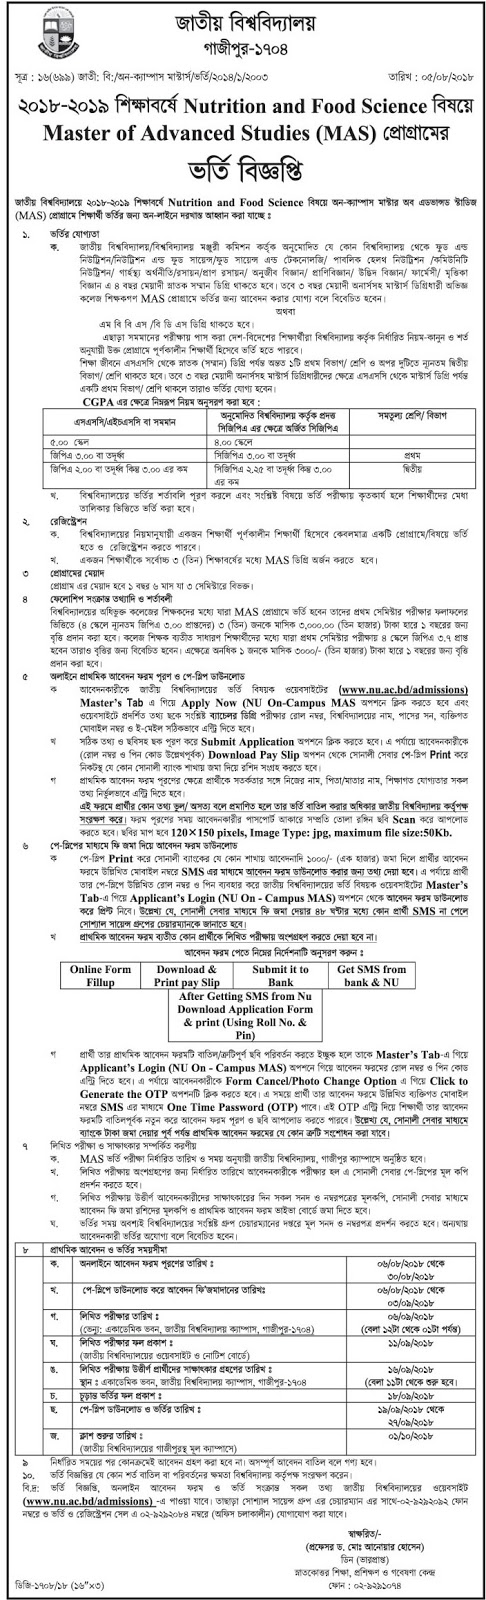 National University Master of Advanced Studies (MAS) Nutrition and Food Science admission Circular 2018-19